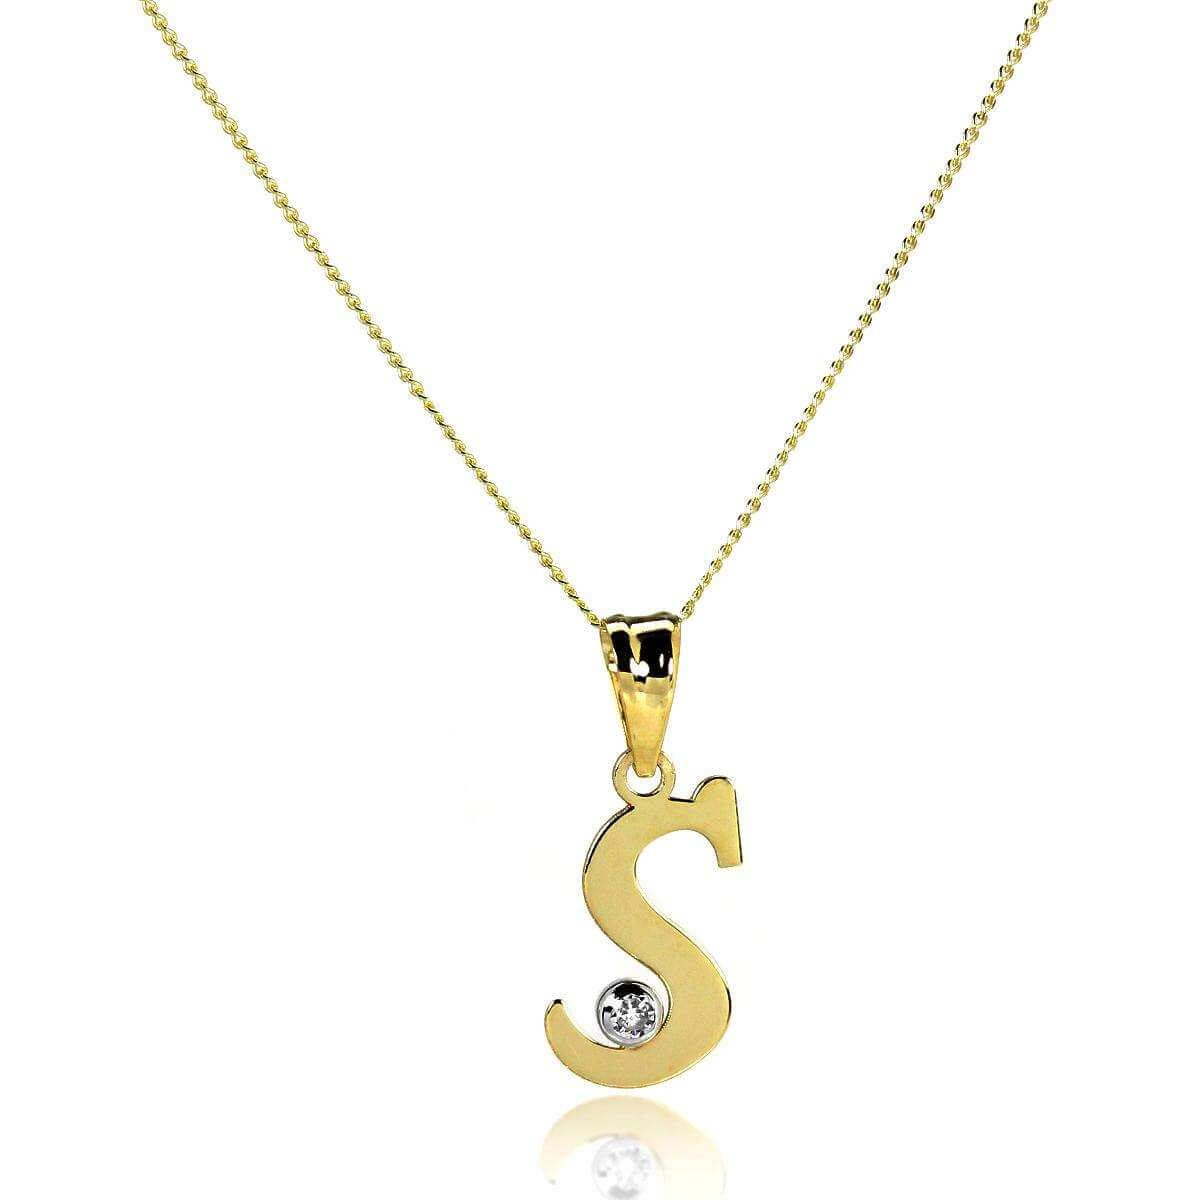 9ct Gold Letter S Pendant with CZ Crystal